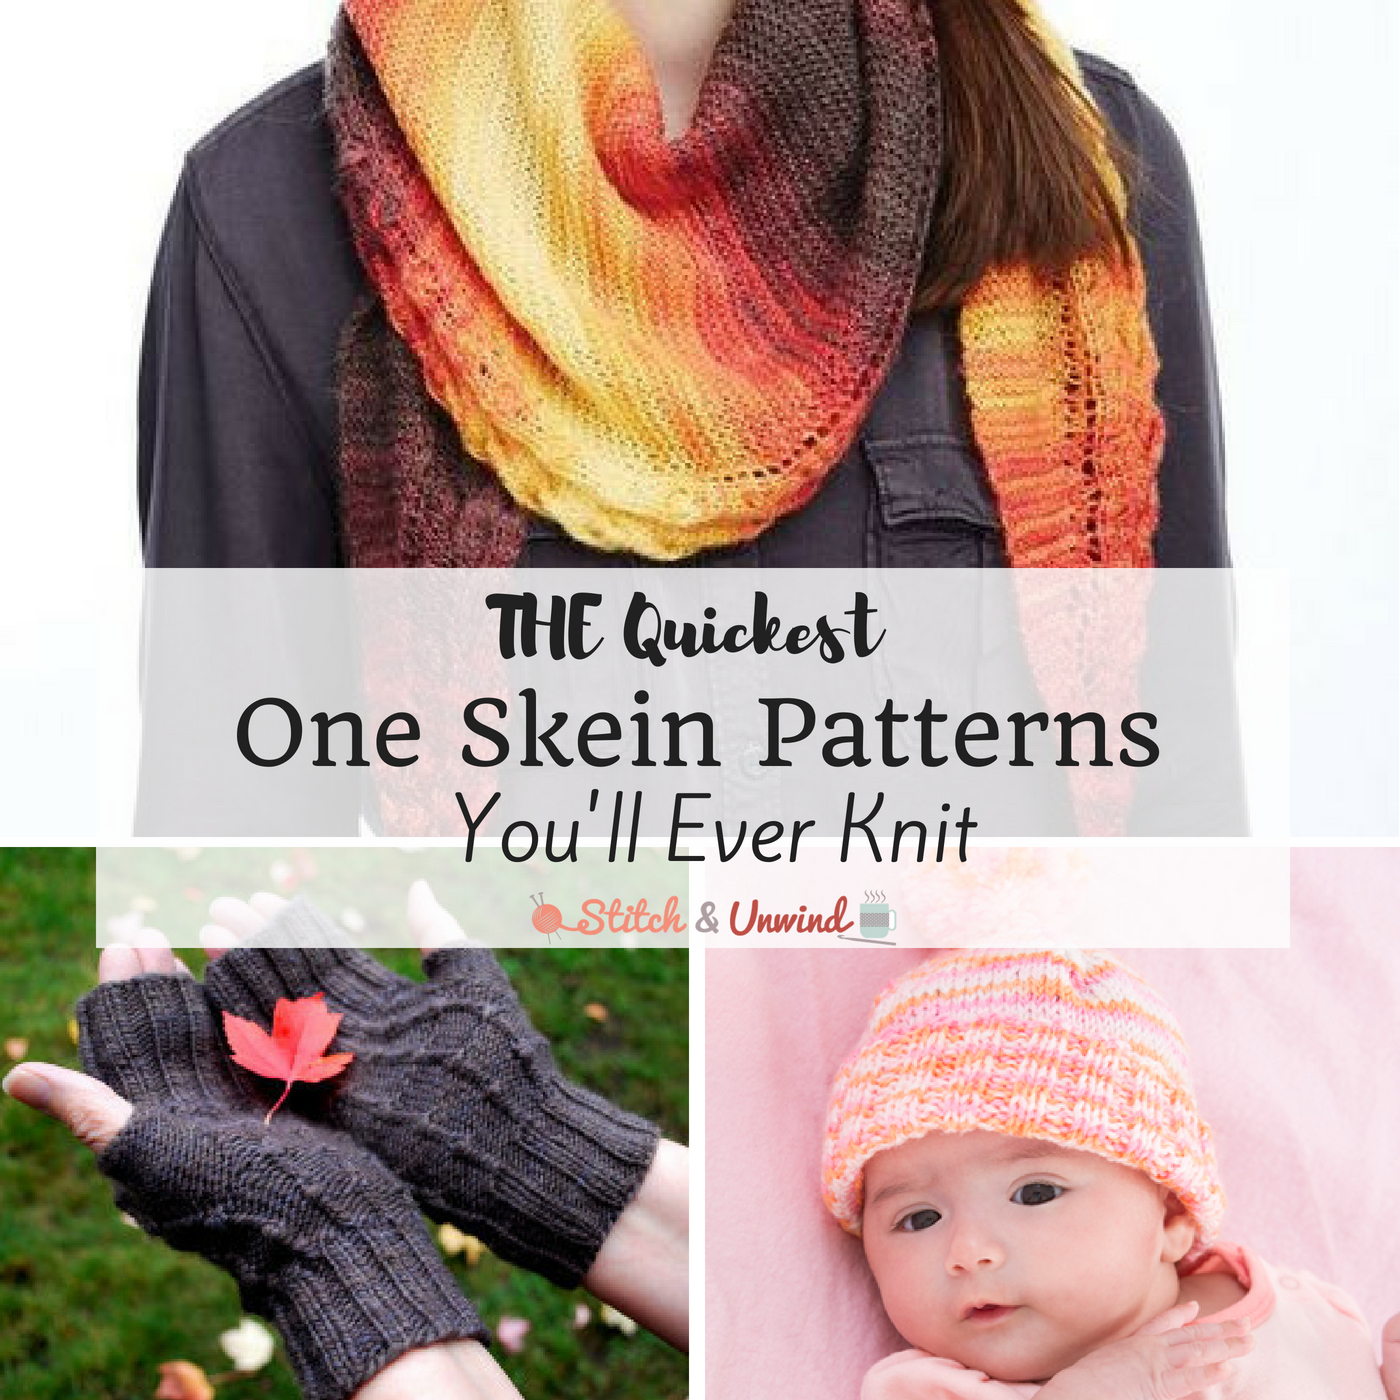 The Quickest One Skein Patterns You'll Ever Knit - Stitch and Unwind